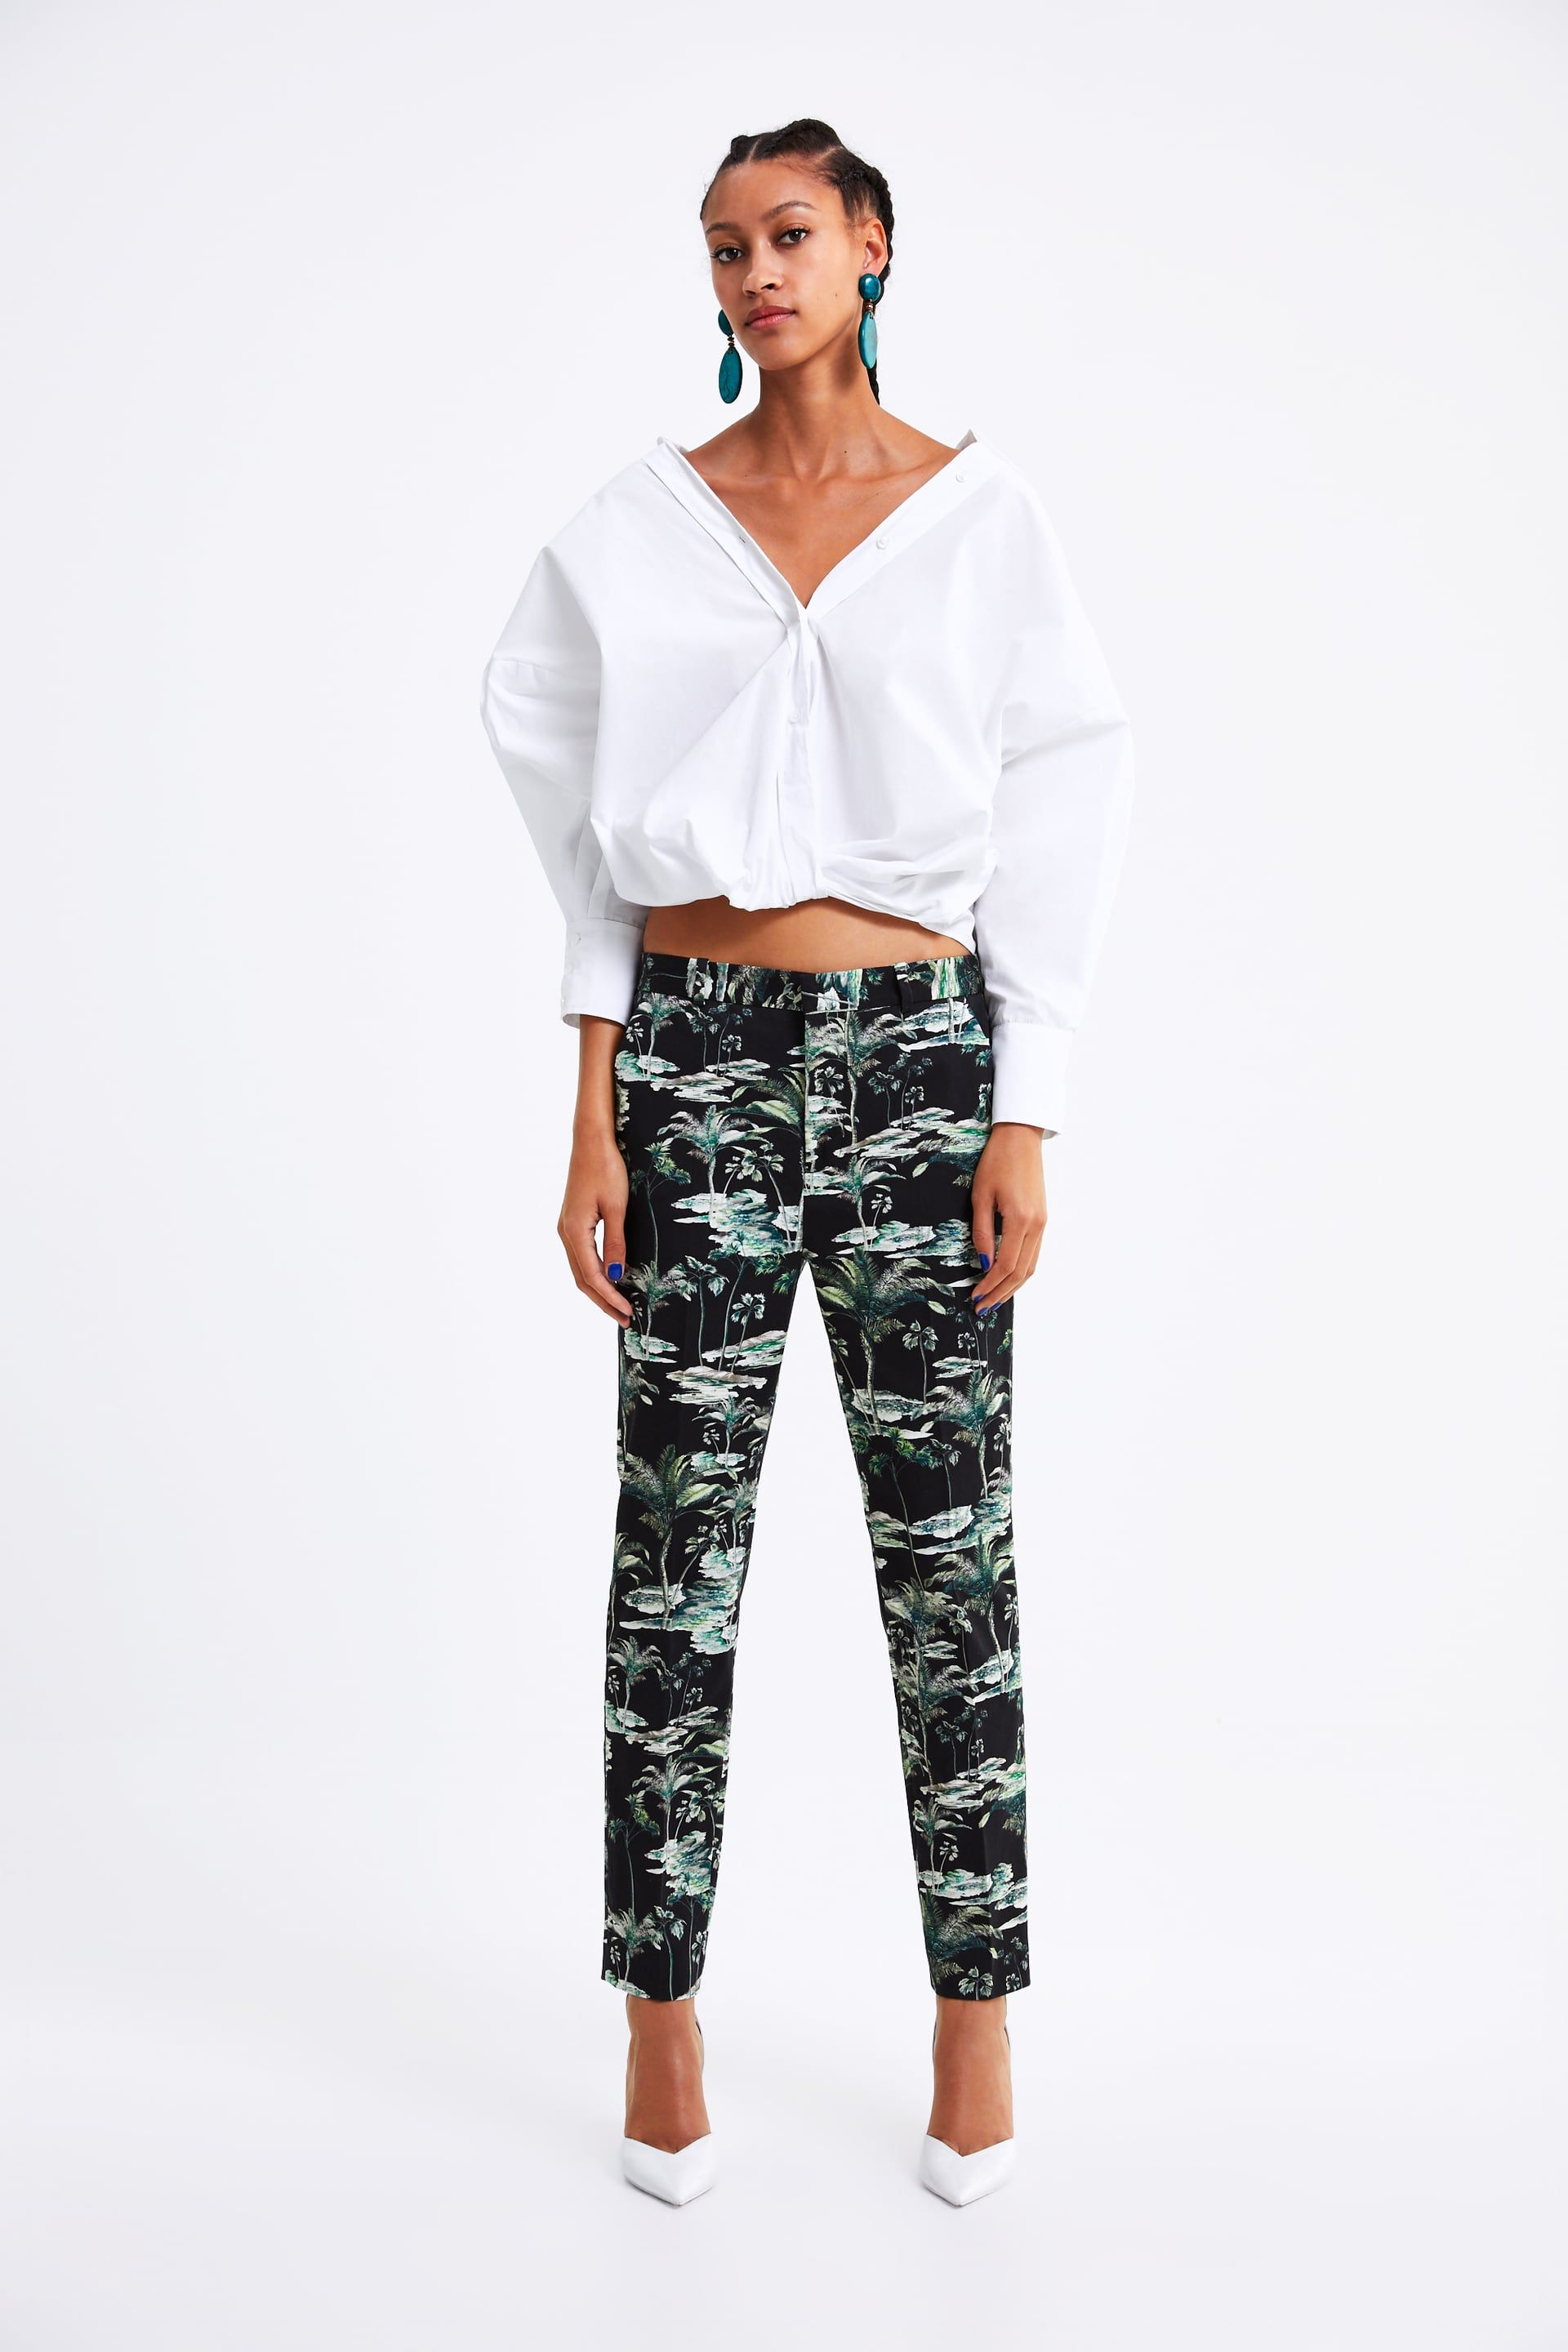 9b2fe46d30 Palm tree print pants in 2019 | My fashion | Palm tree print ...